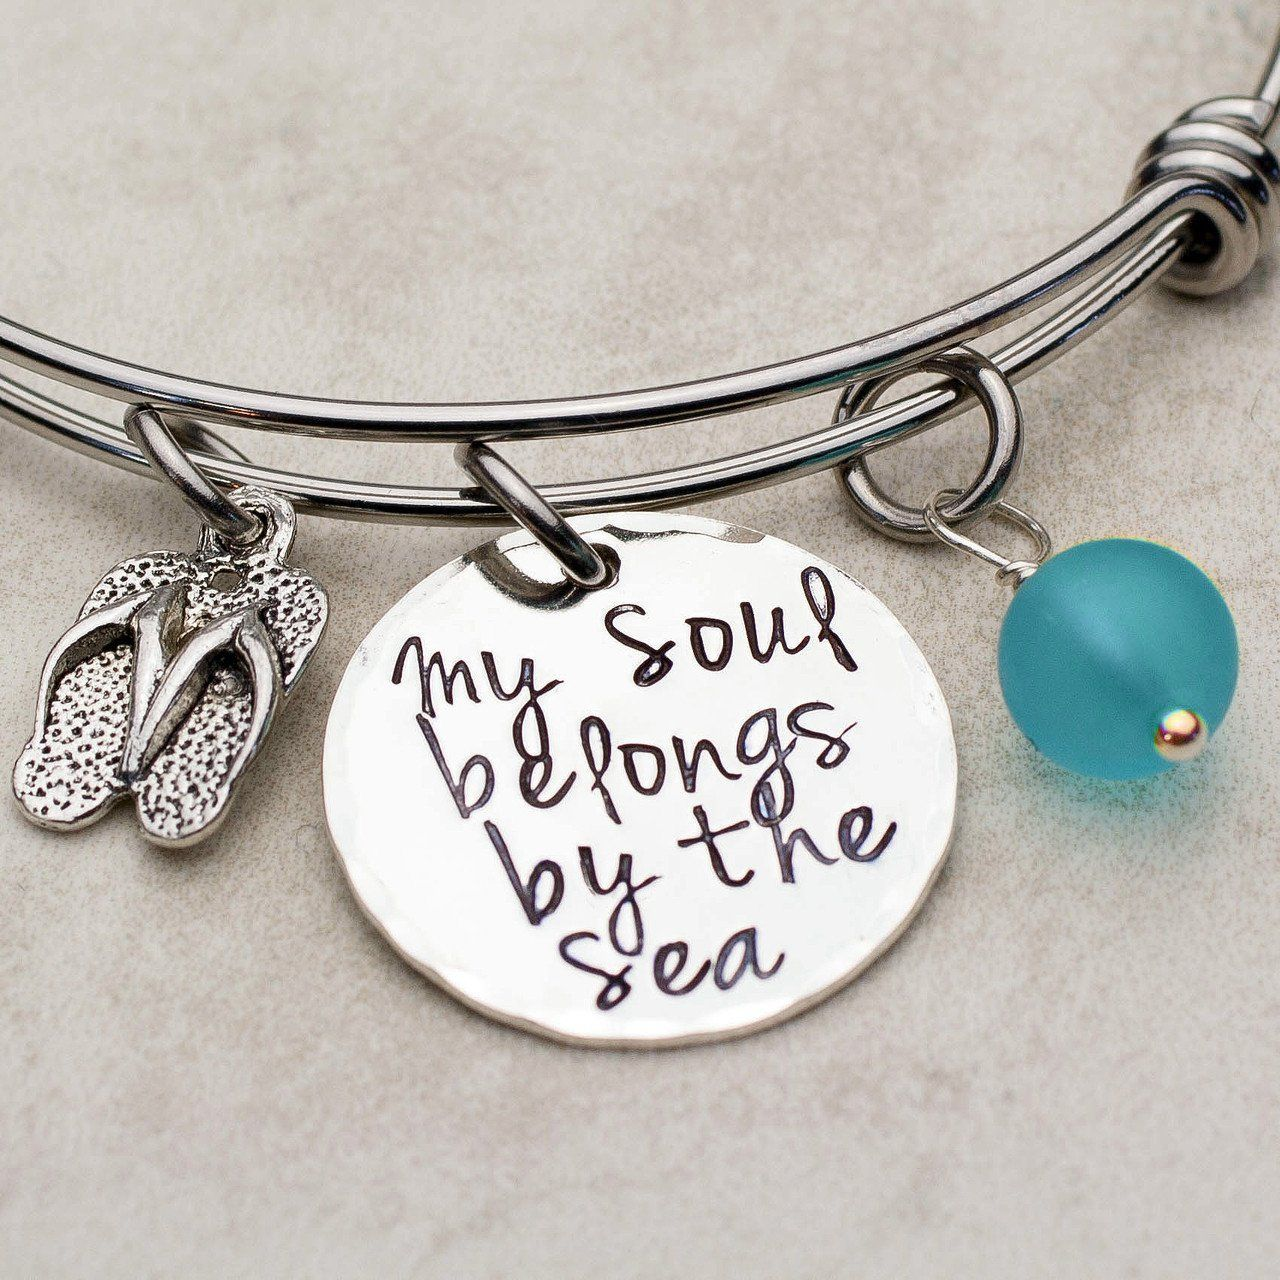 My soul belongs by the sea adjustable bangle charm bracelet bangle